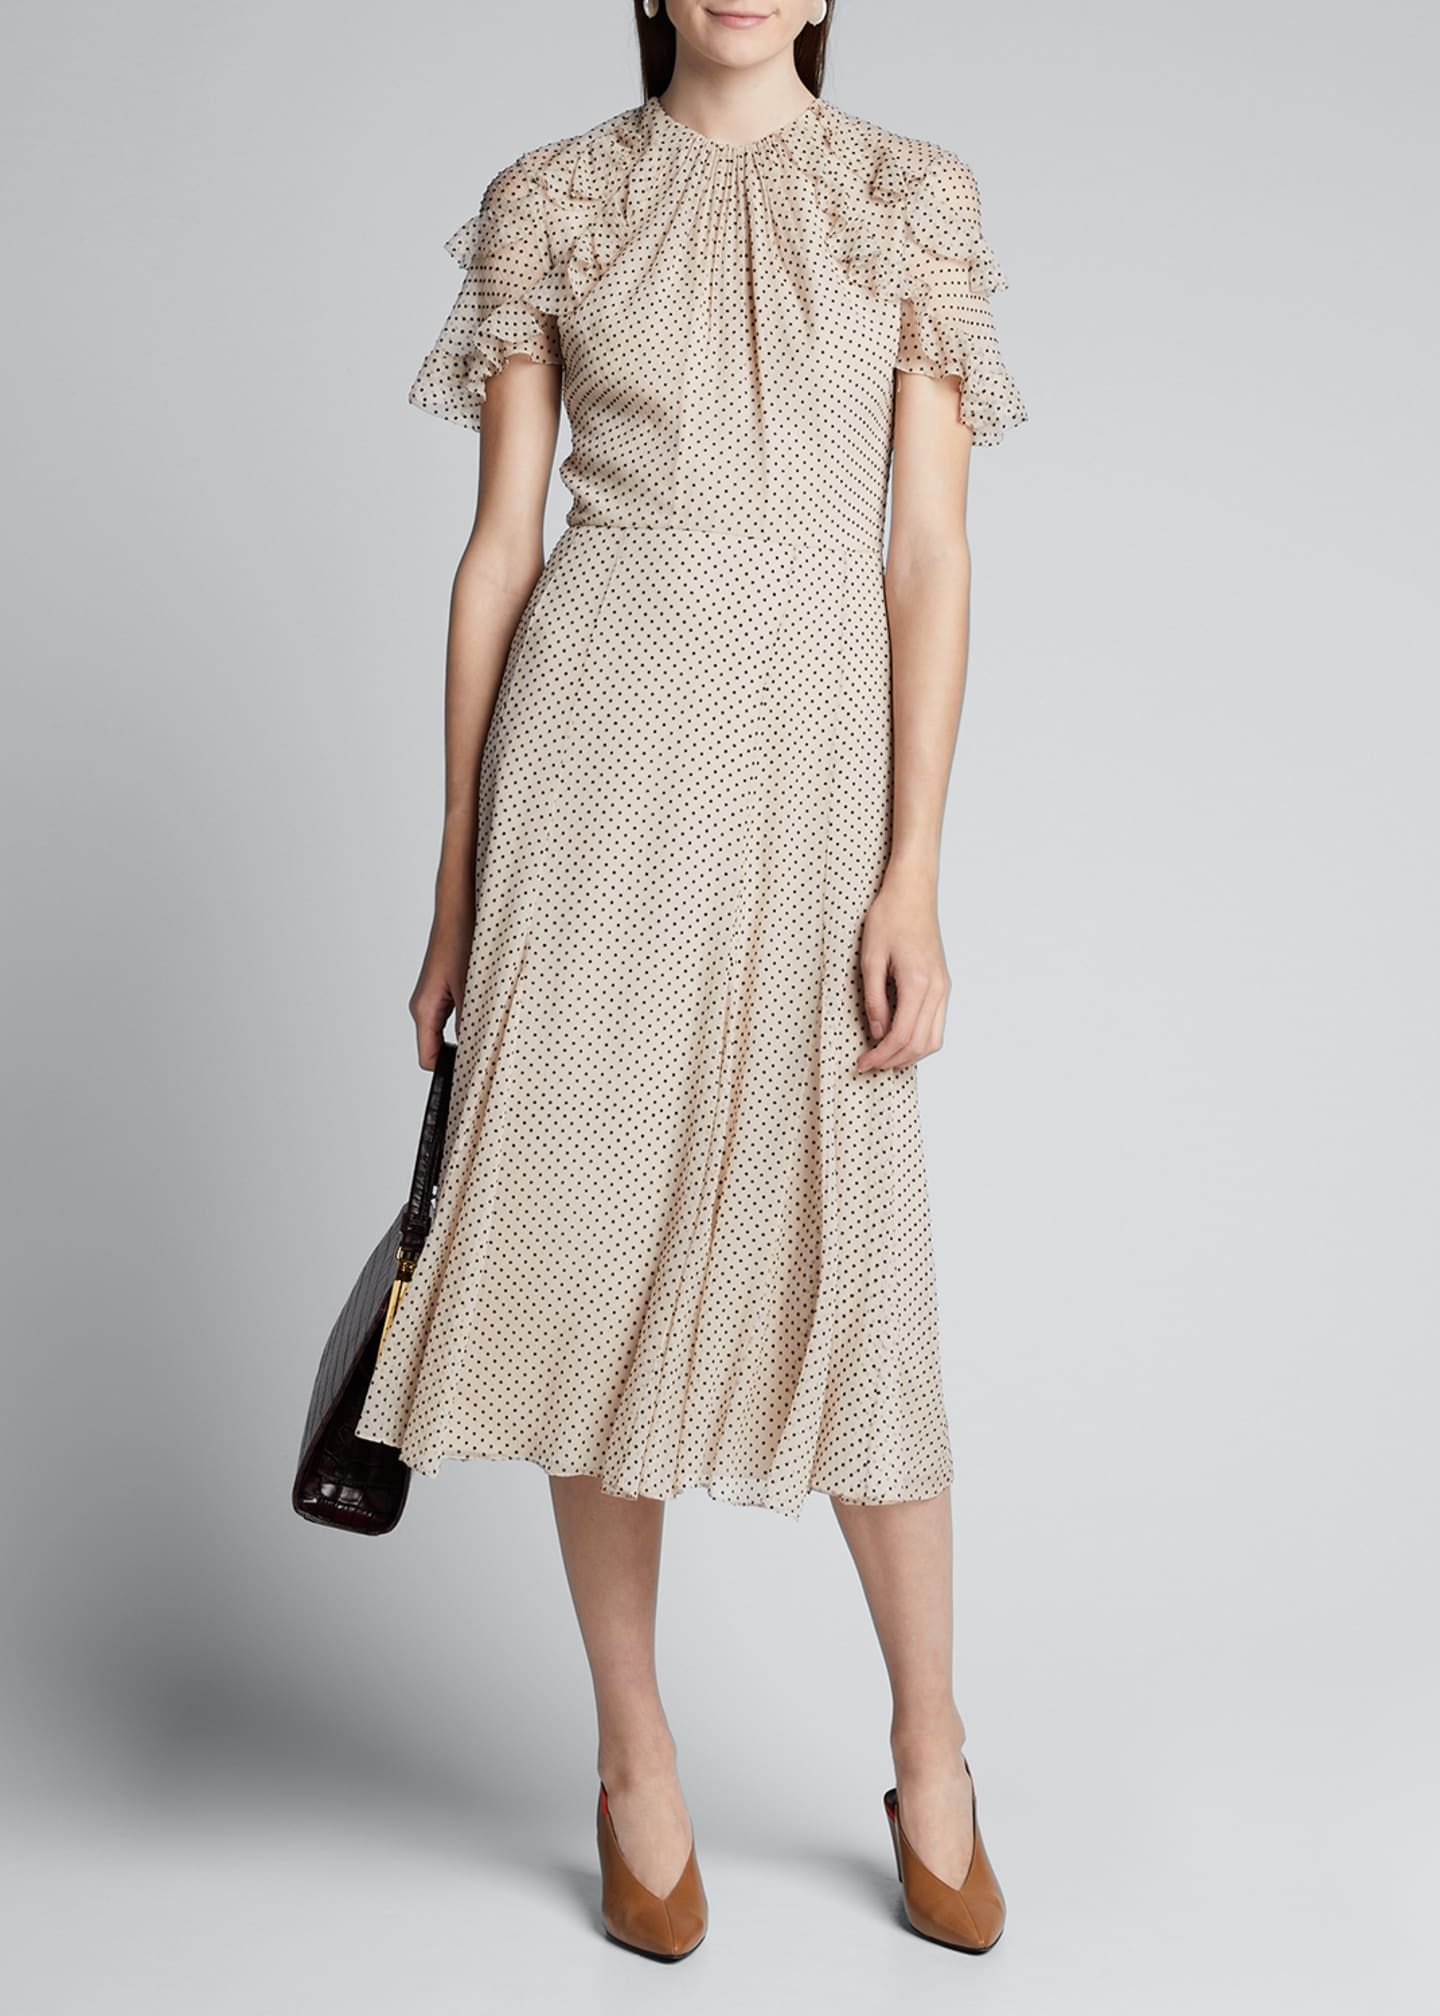 Jason Wu Collection Flocked Dotted-Silk Crinkle Chiffon Dress